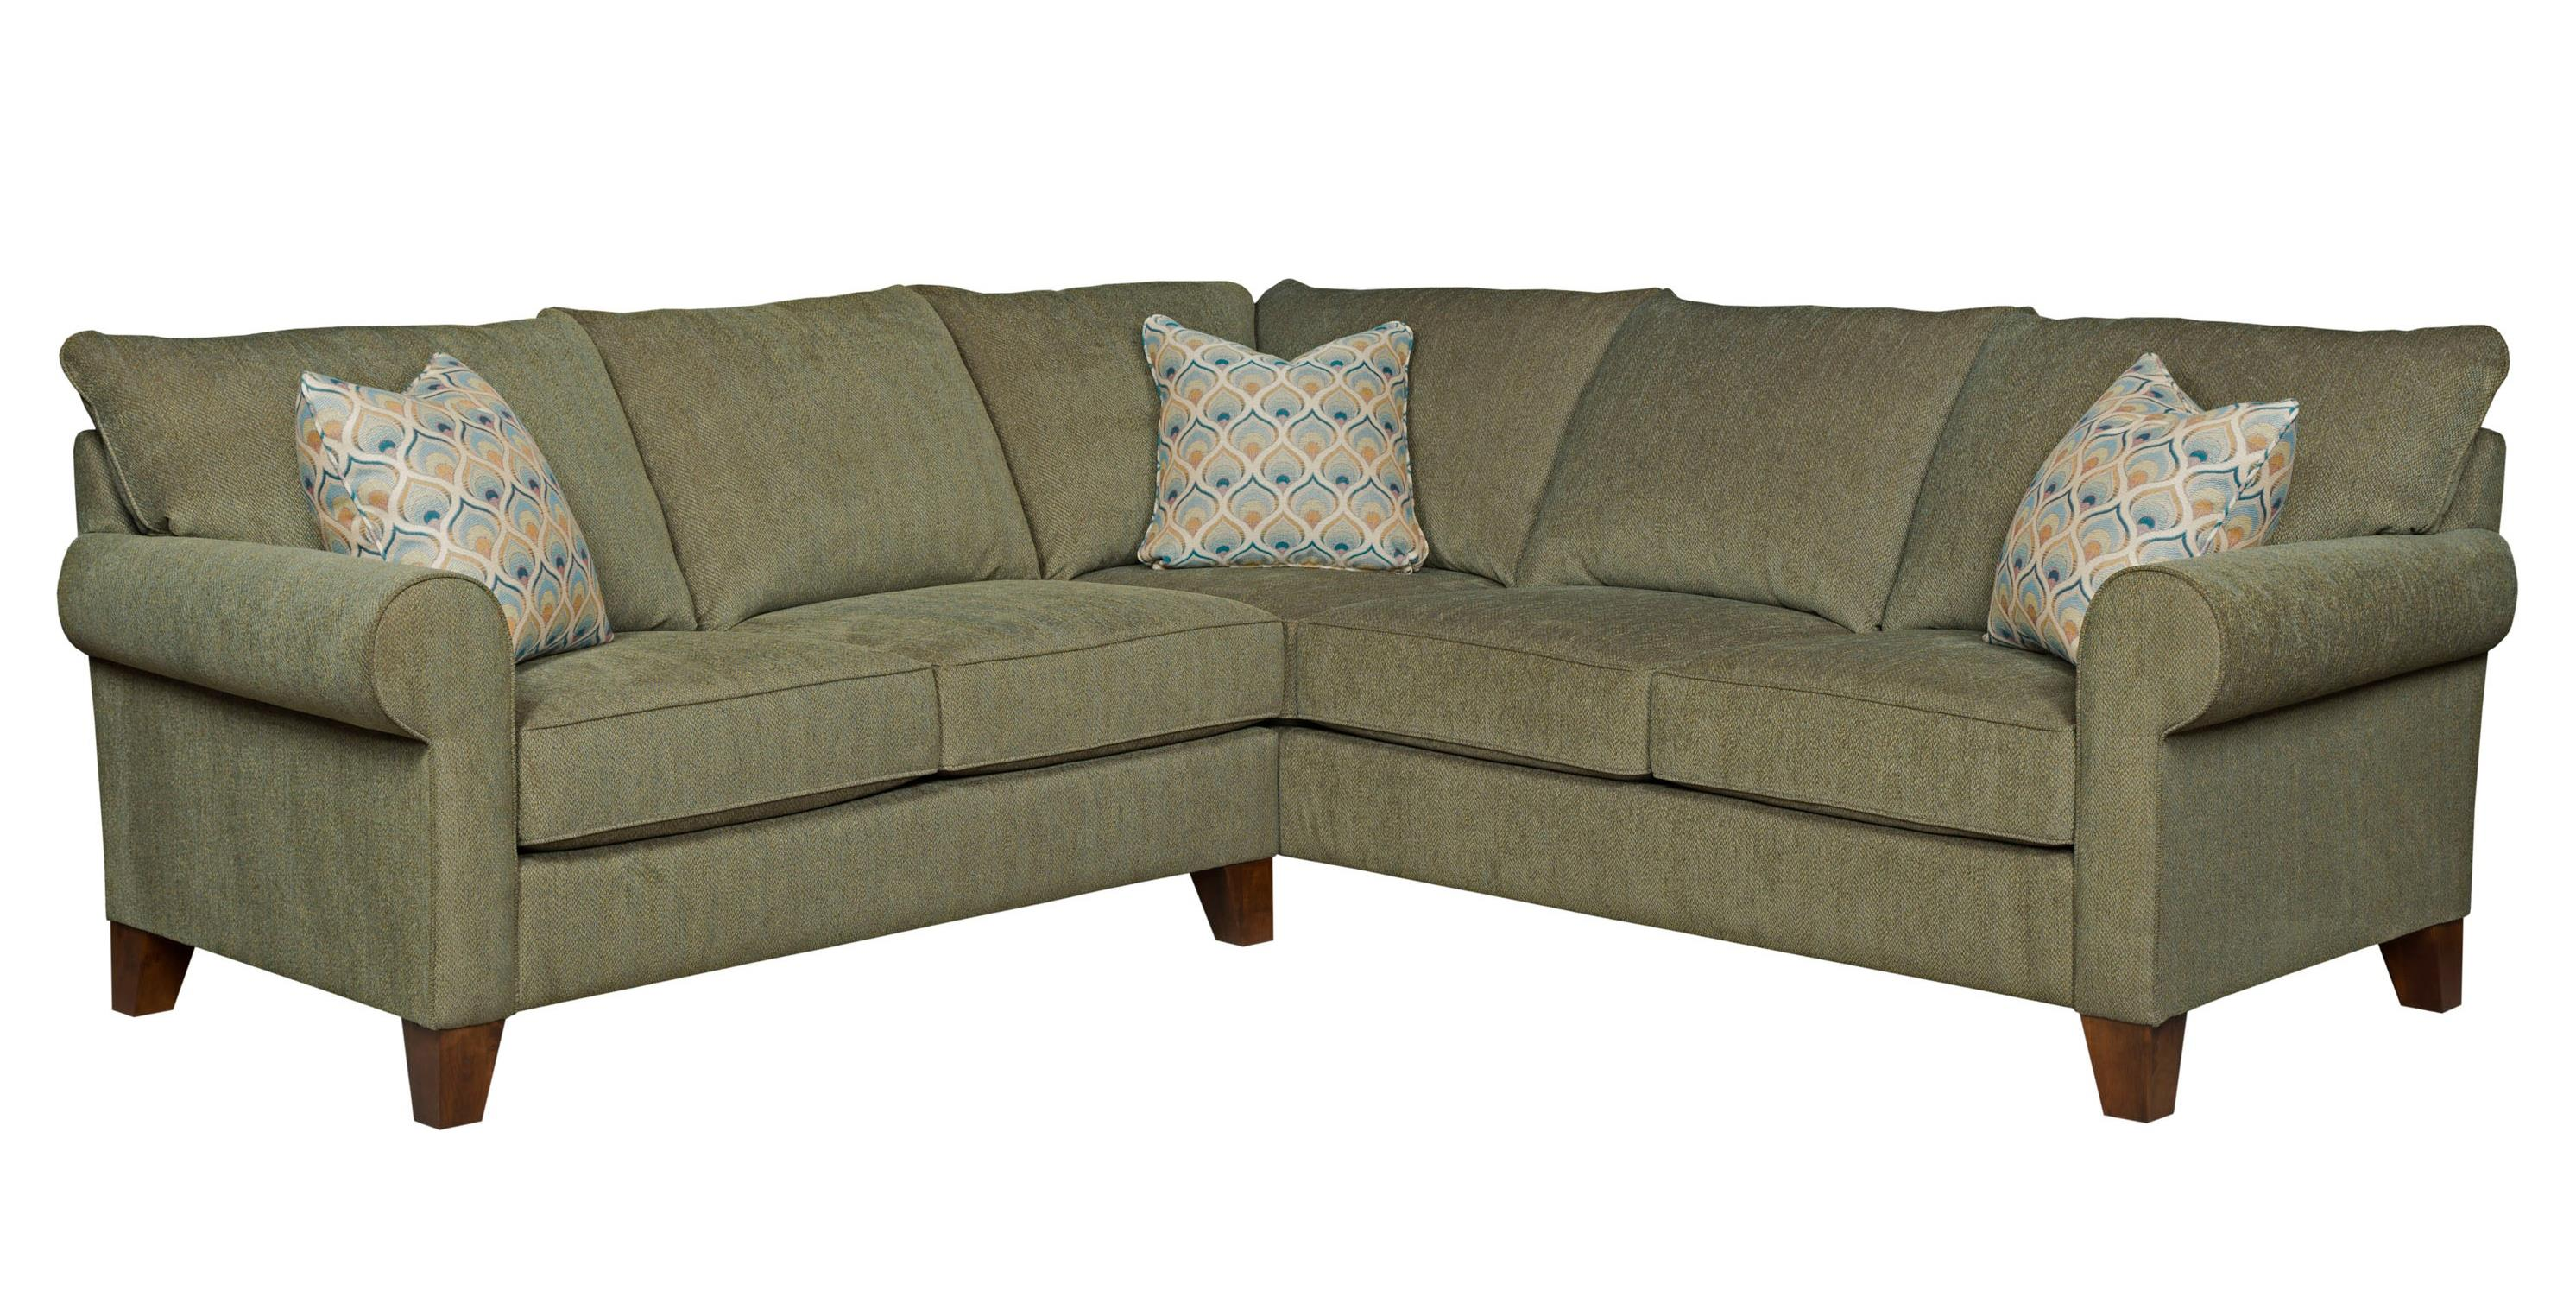 Broyhill Furniture Noda Transitional Sectional Sofa - Item Number: 4231-2+3-4075-27